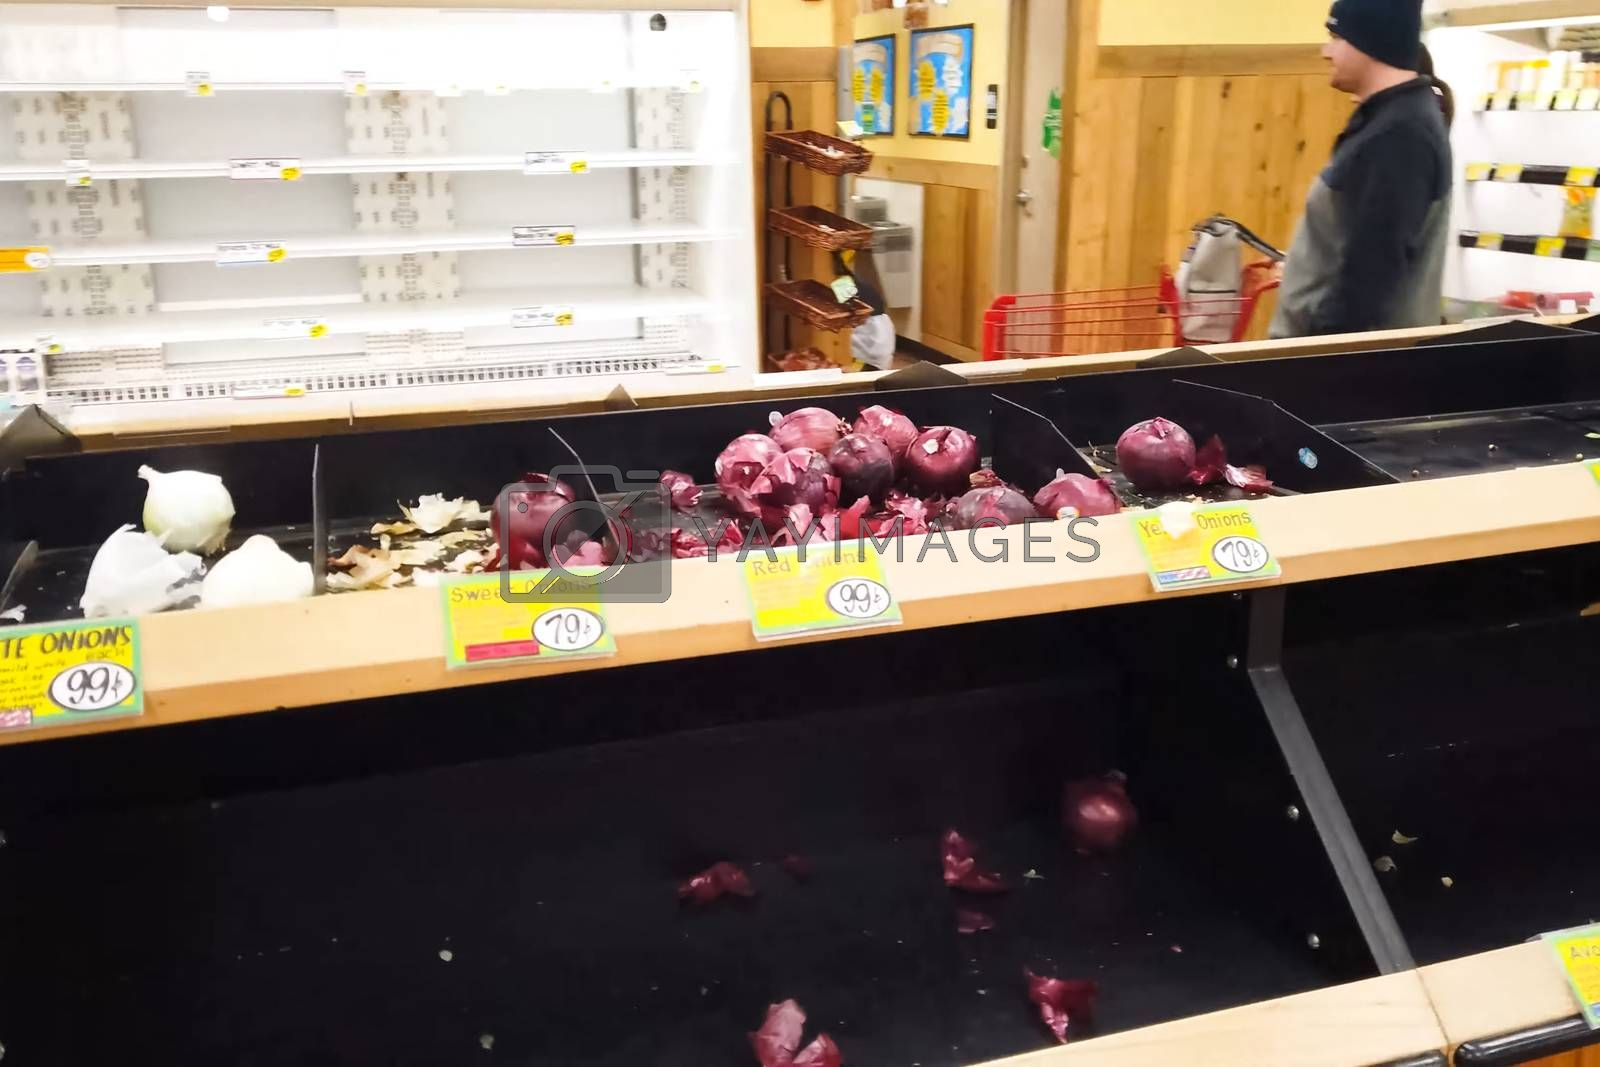 New York, USA - April 2, 2020: Empty shelves with groceries in supermarkets because of the panic from the coronavirus.